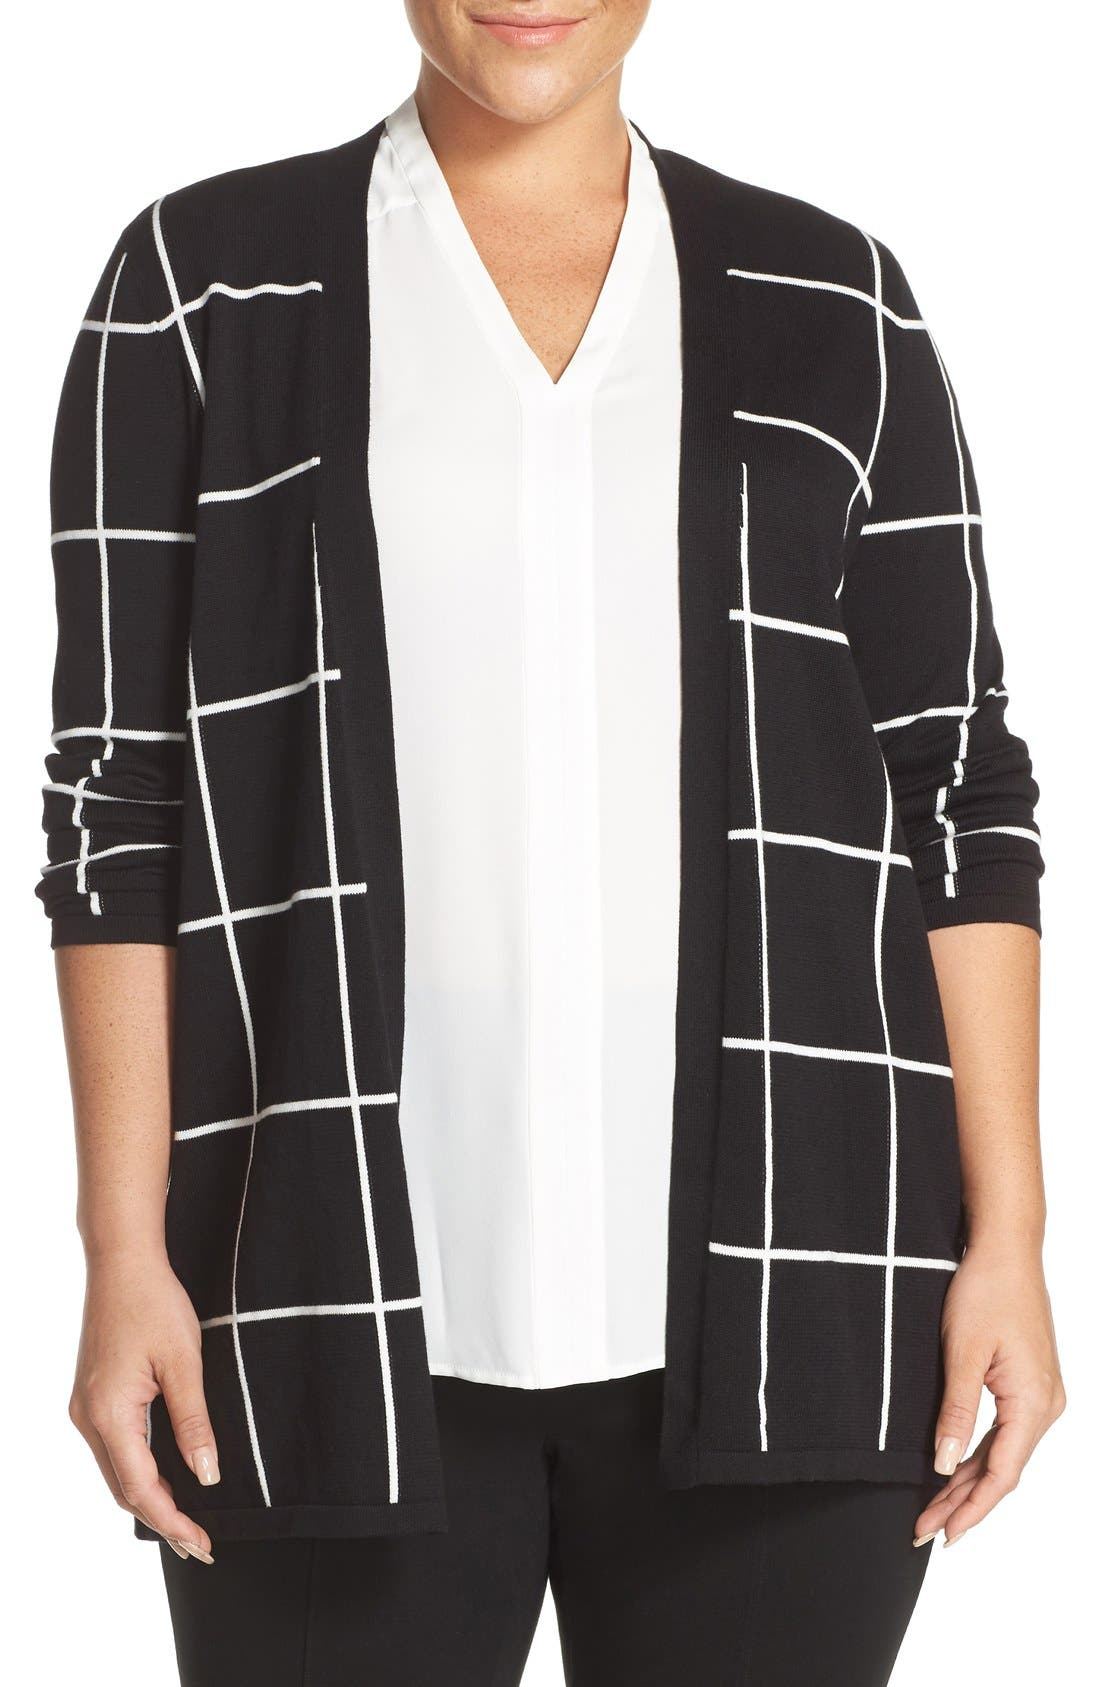 Alternate Image 1 Selected - Vince Camuto Windowpane Intarsia Open Front Cardigan (Plus Size)